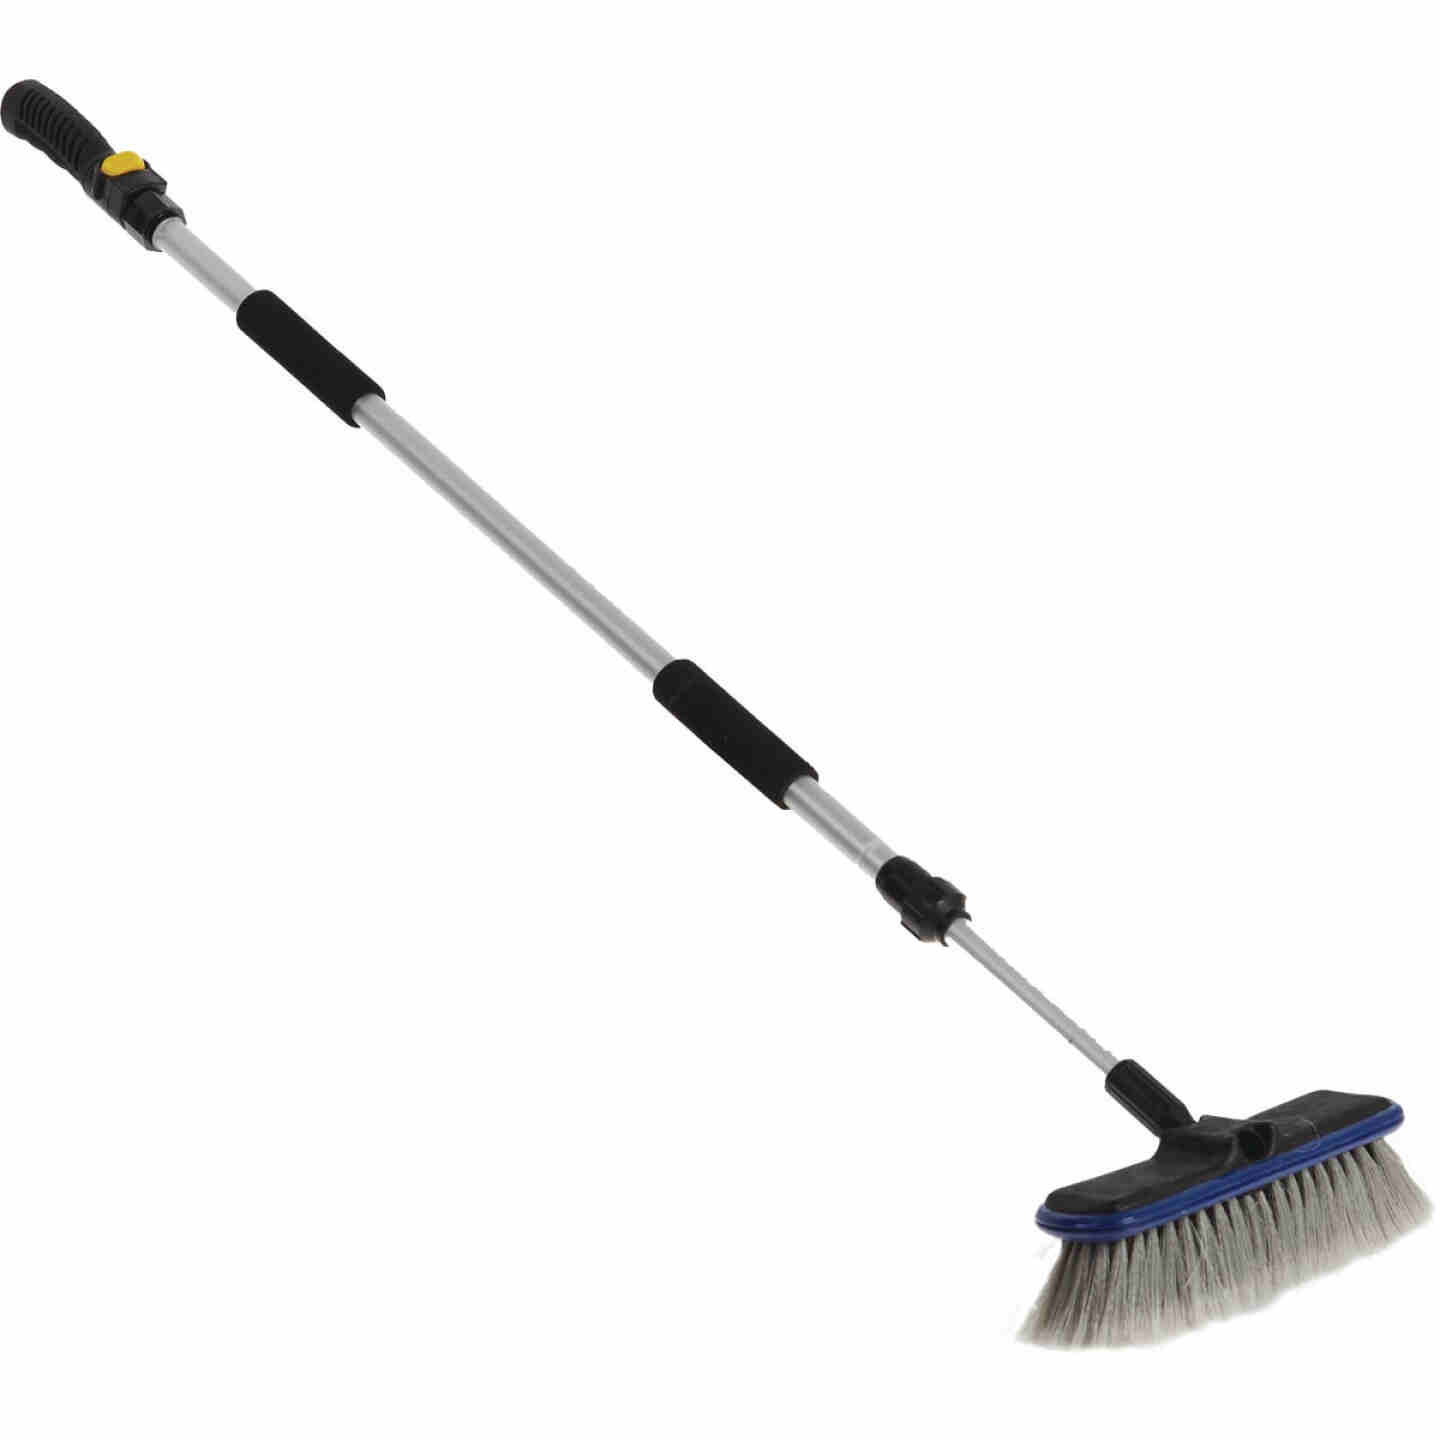 Viking 10 In. Deluxe Flo-Thru Wash Brush with 40 In. to 66 In. Telescoping Handle Image 3